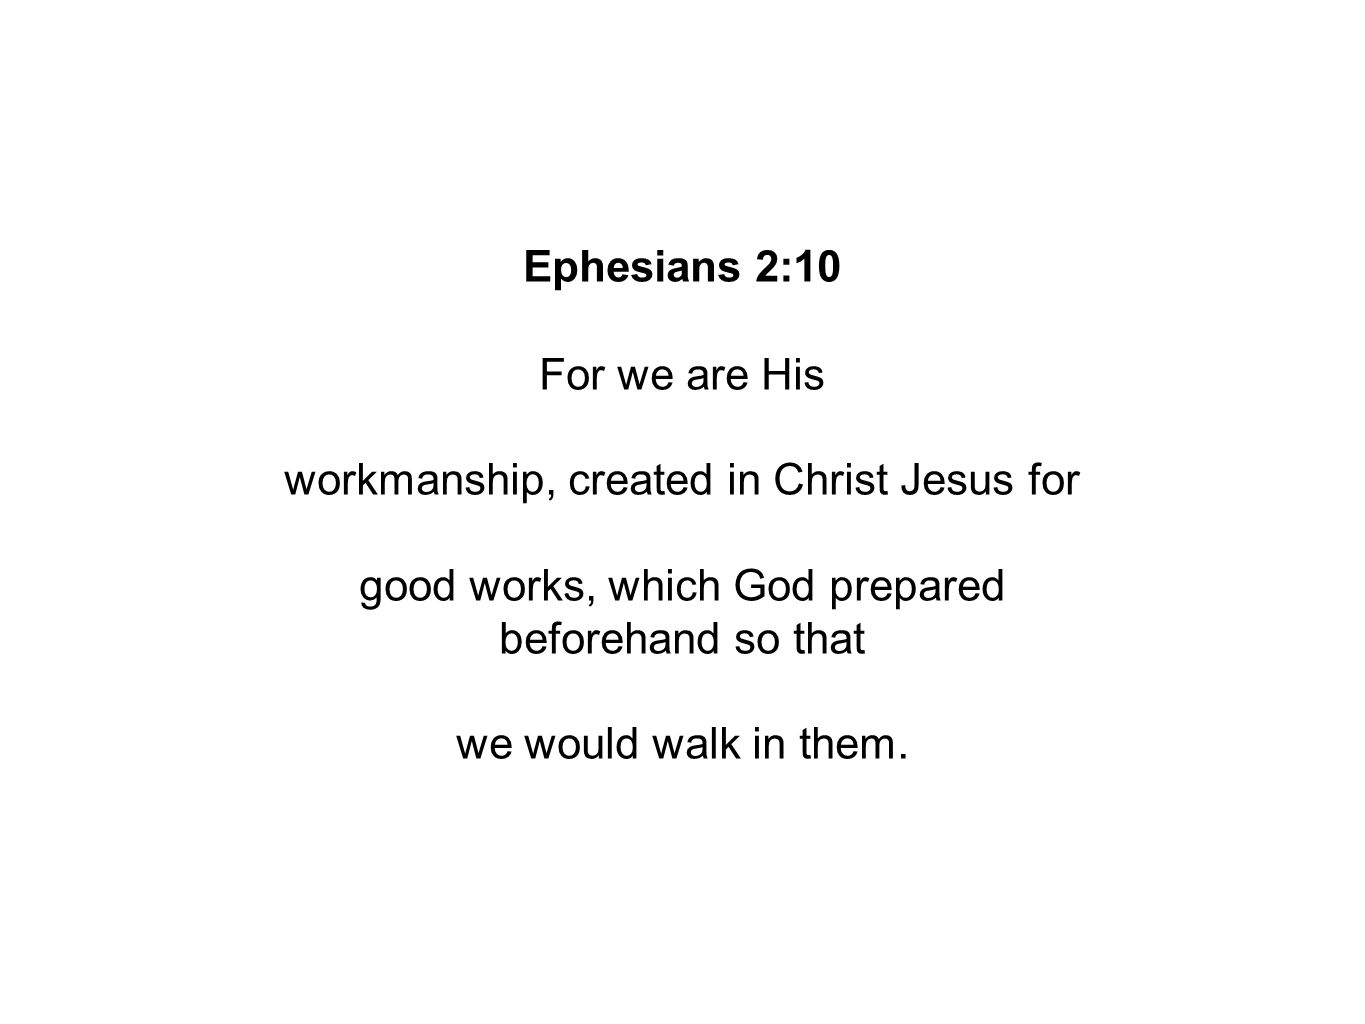 Ephesians 2:10 For we are His workmanship, created in Christ Jesus for good works, which God prepared beforehand so that we would walk in them.